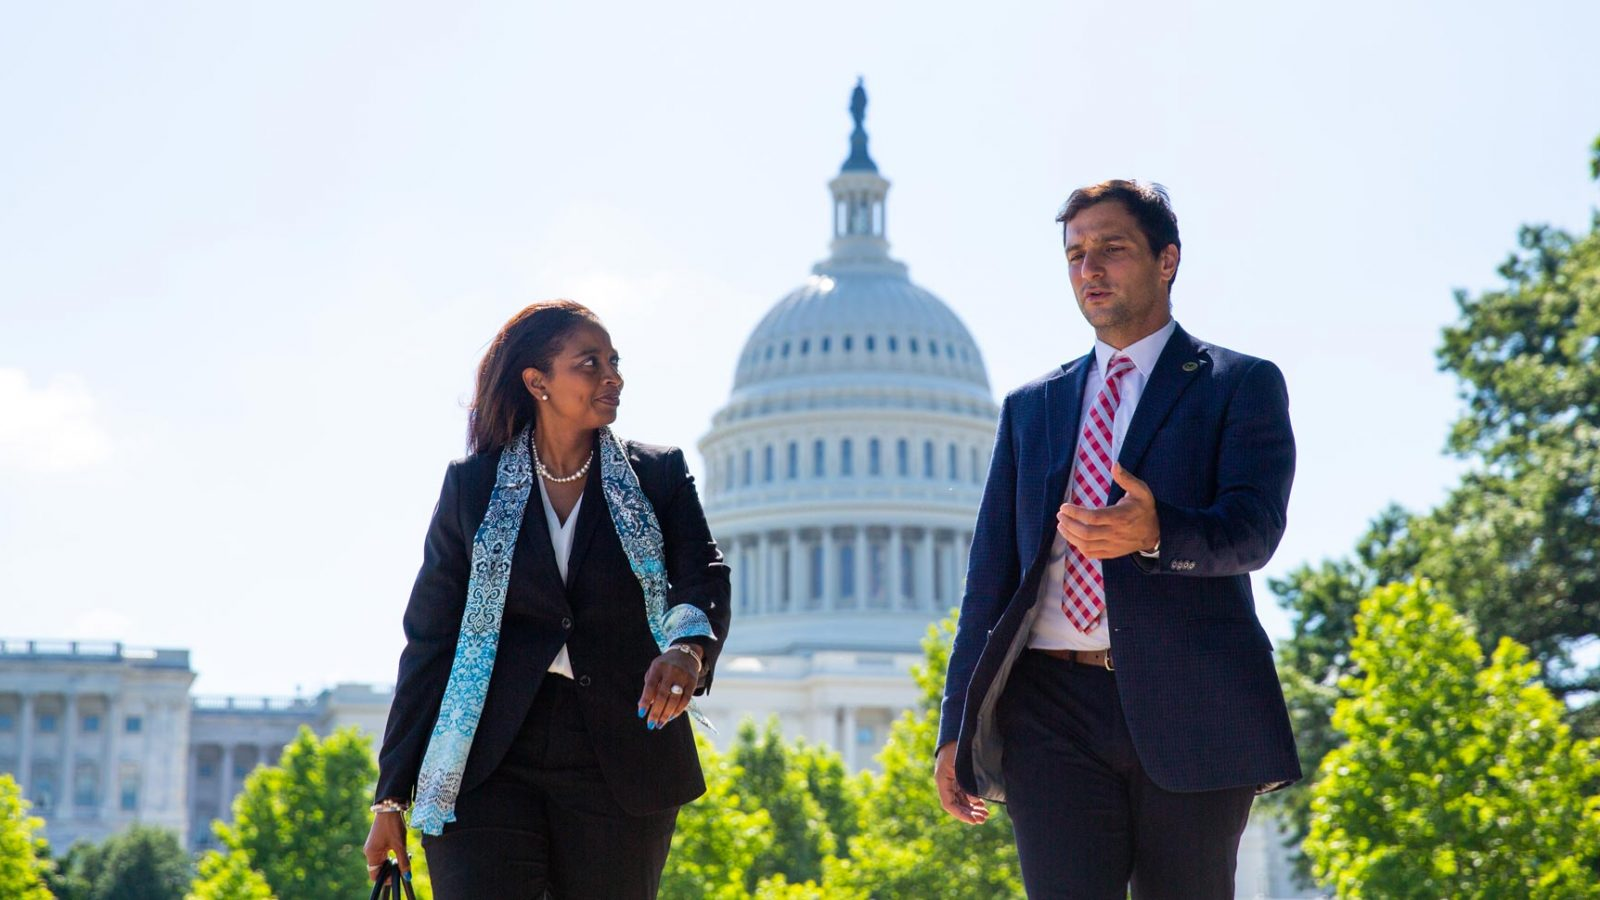 Woman and man in business clothes walk in front of the Capitol Building